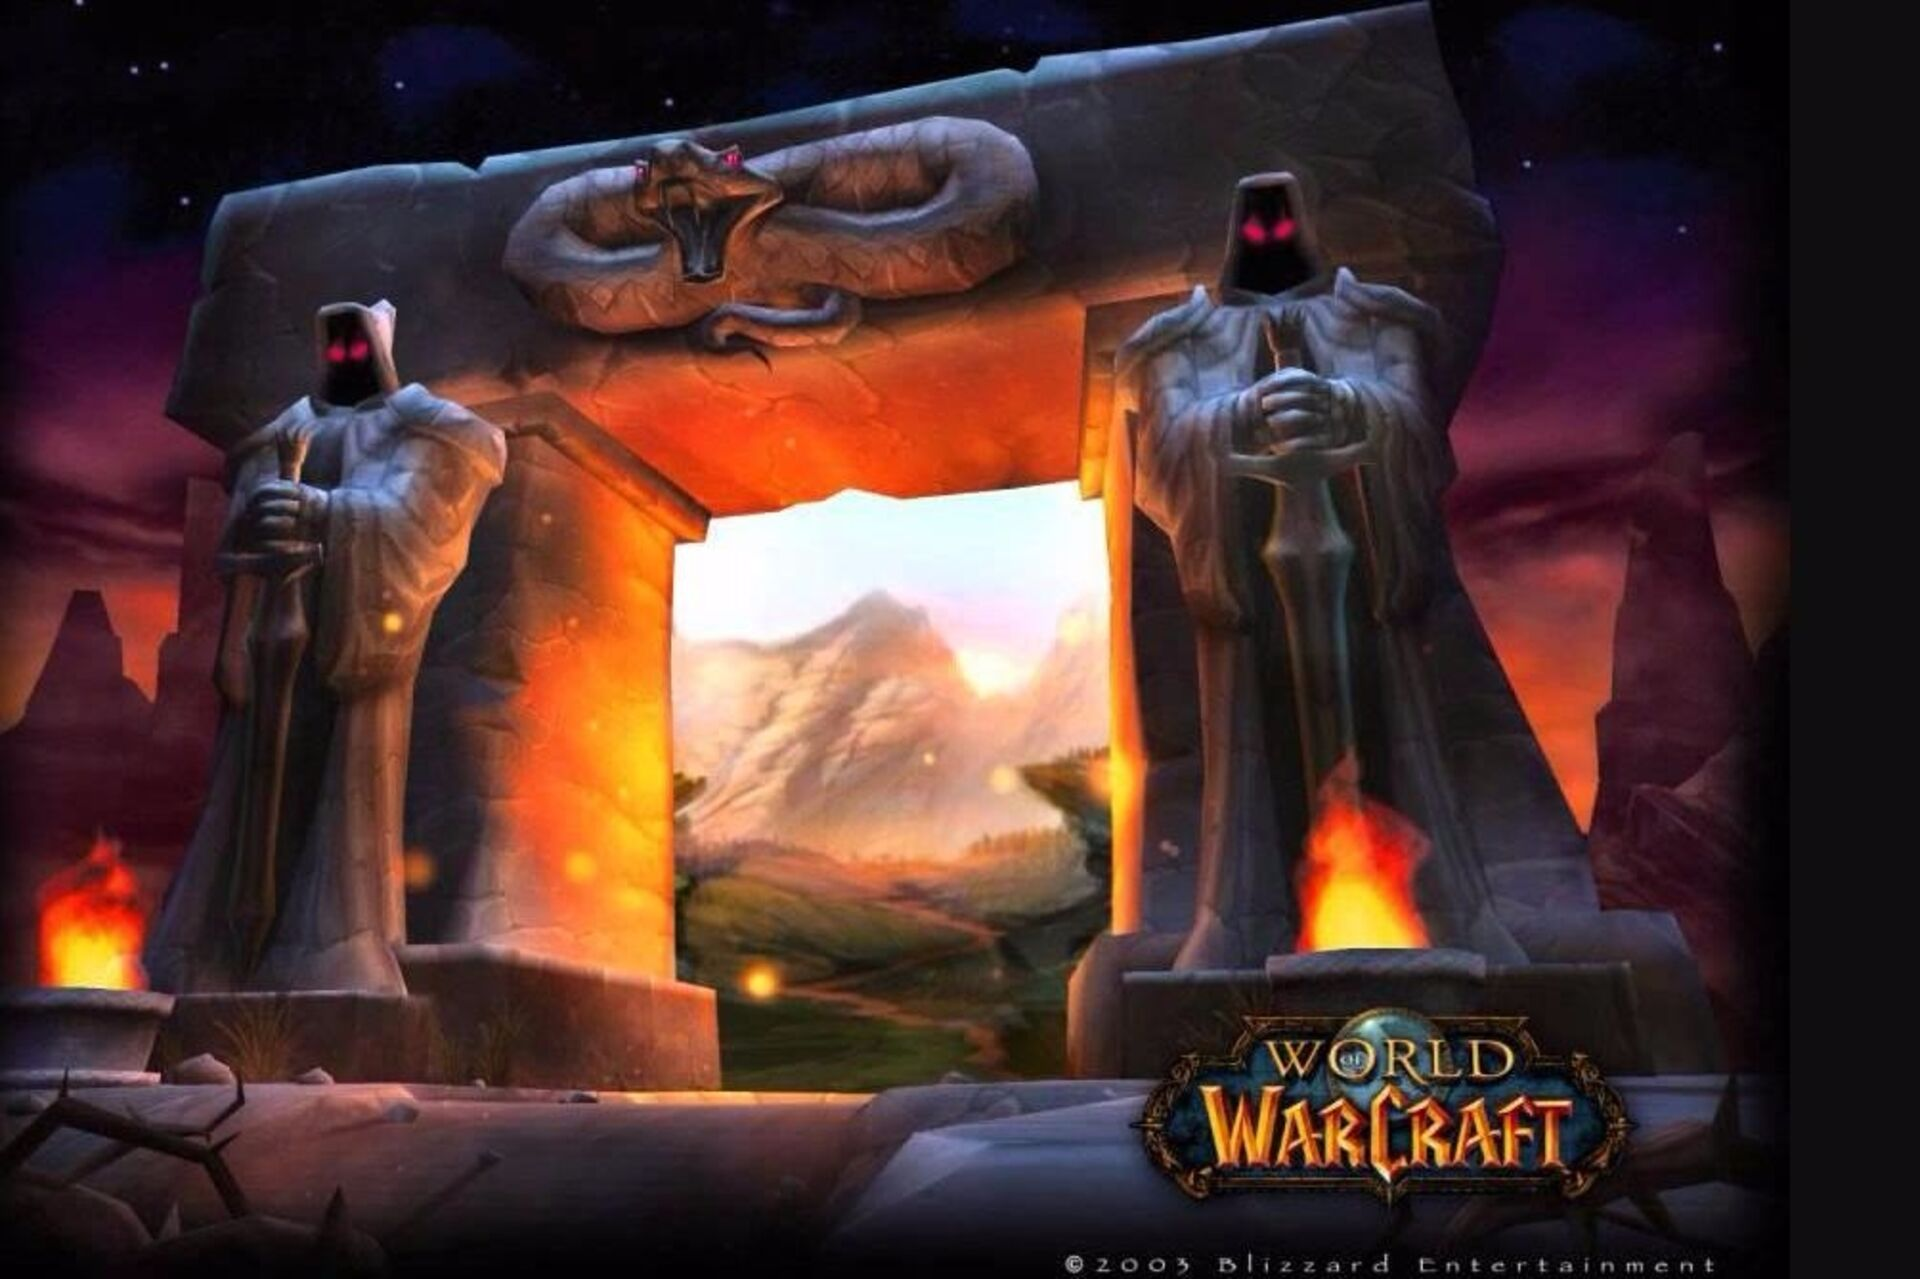 Nostalrius team throws down gauntlet following Blizzard's WoW legacy